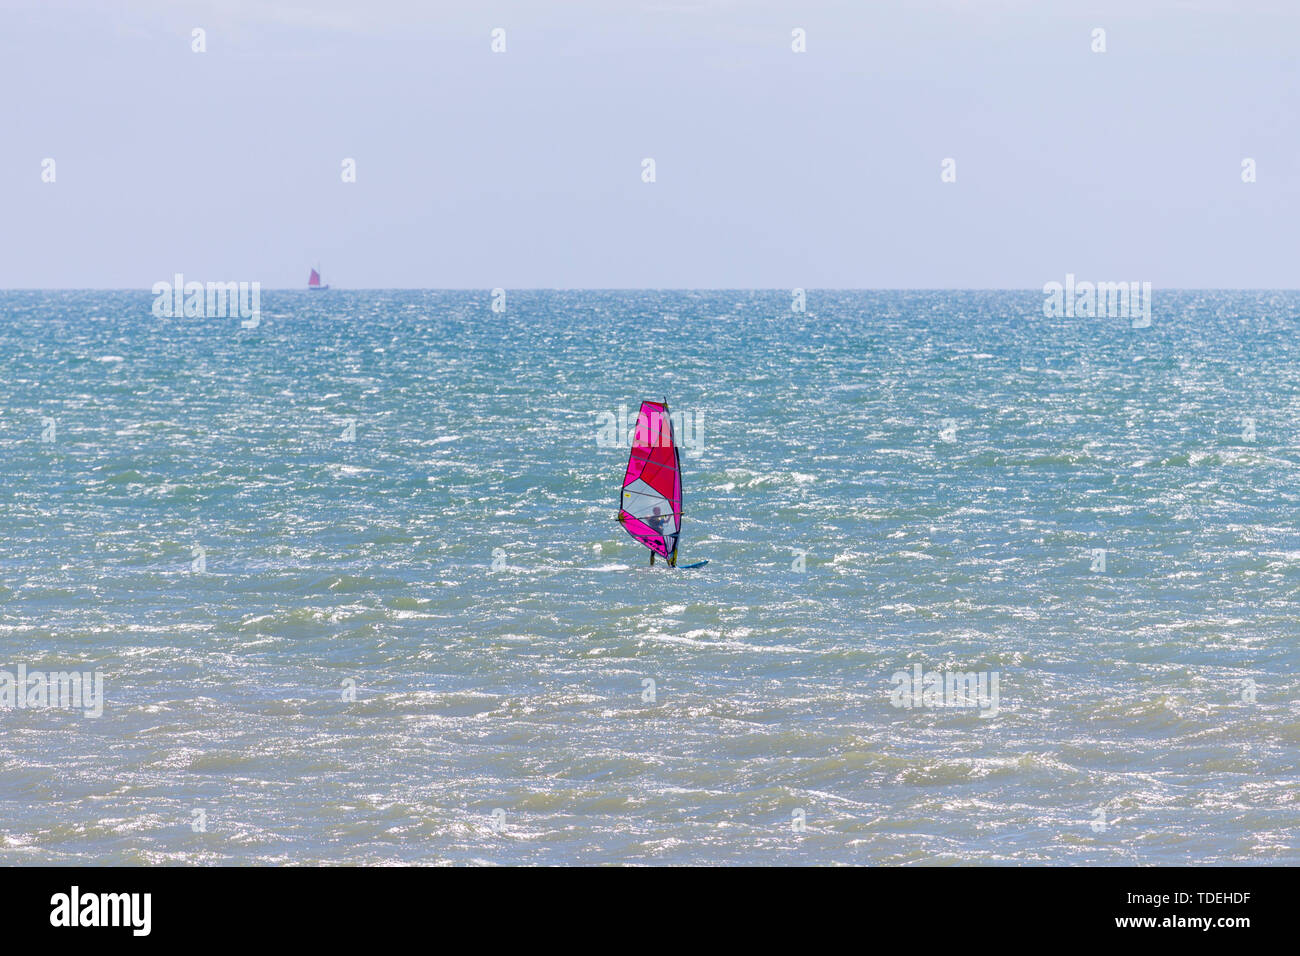 Camber, East Sussex, UK. 15th June, 2019. UK Weather: A beautiful sunny start to the weekend in Camber, East Sussex as people arrive to the Camber Sands beach to enjoy the warm weather. A solitary wind surfer with a bright pink sail takes to the sea on a warm and pleasant day with a slight breeze in the air. Credit: Paul Lawrenson 2019, Photo Credit: Paul Lawrenson/ Alamy Live News Stock Photo